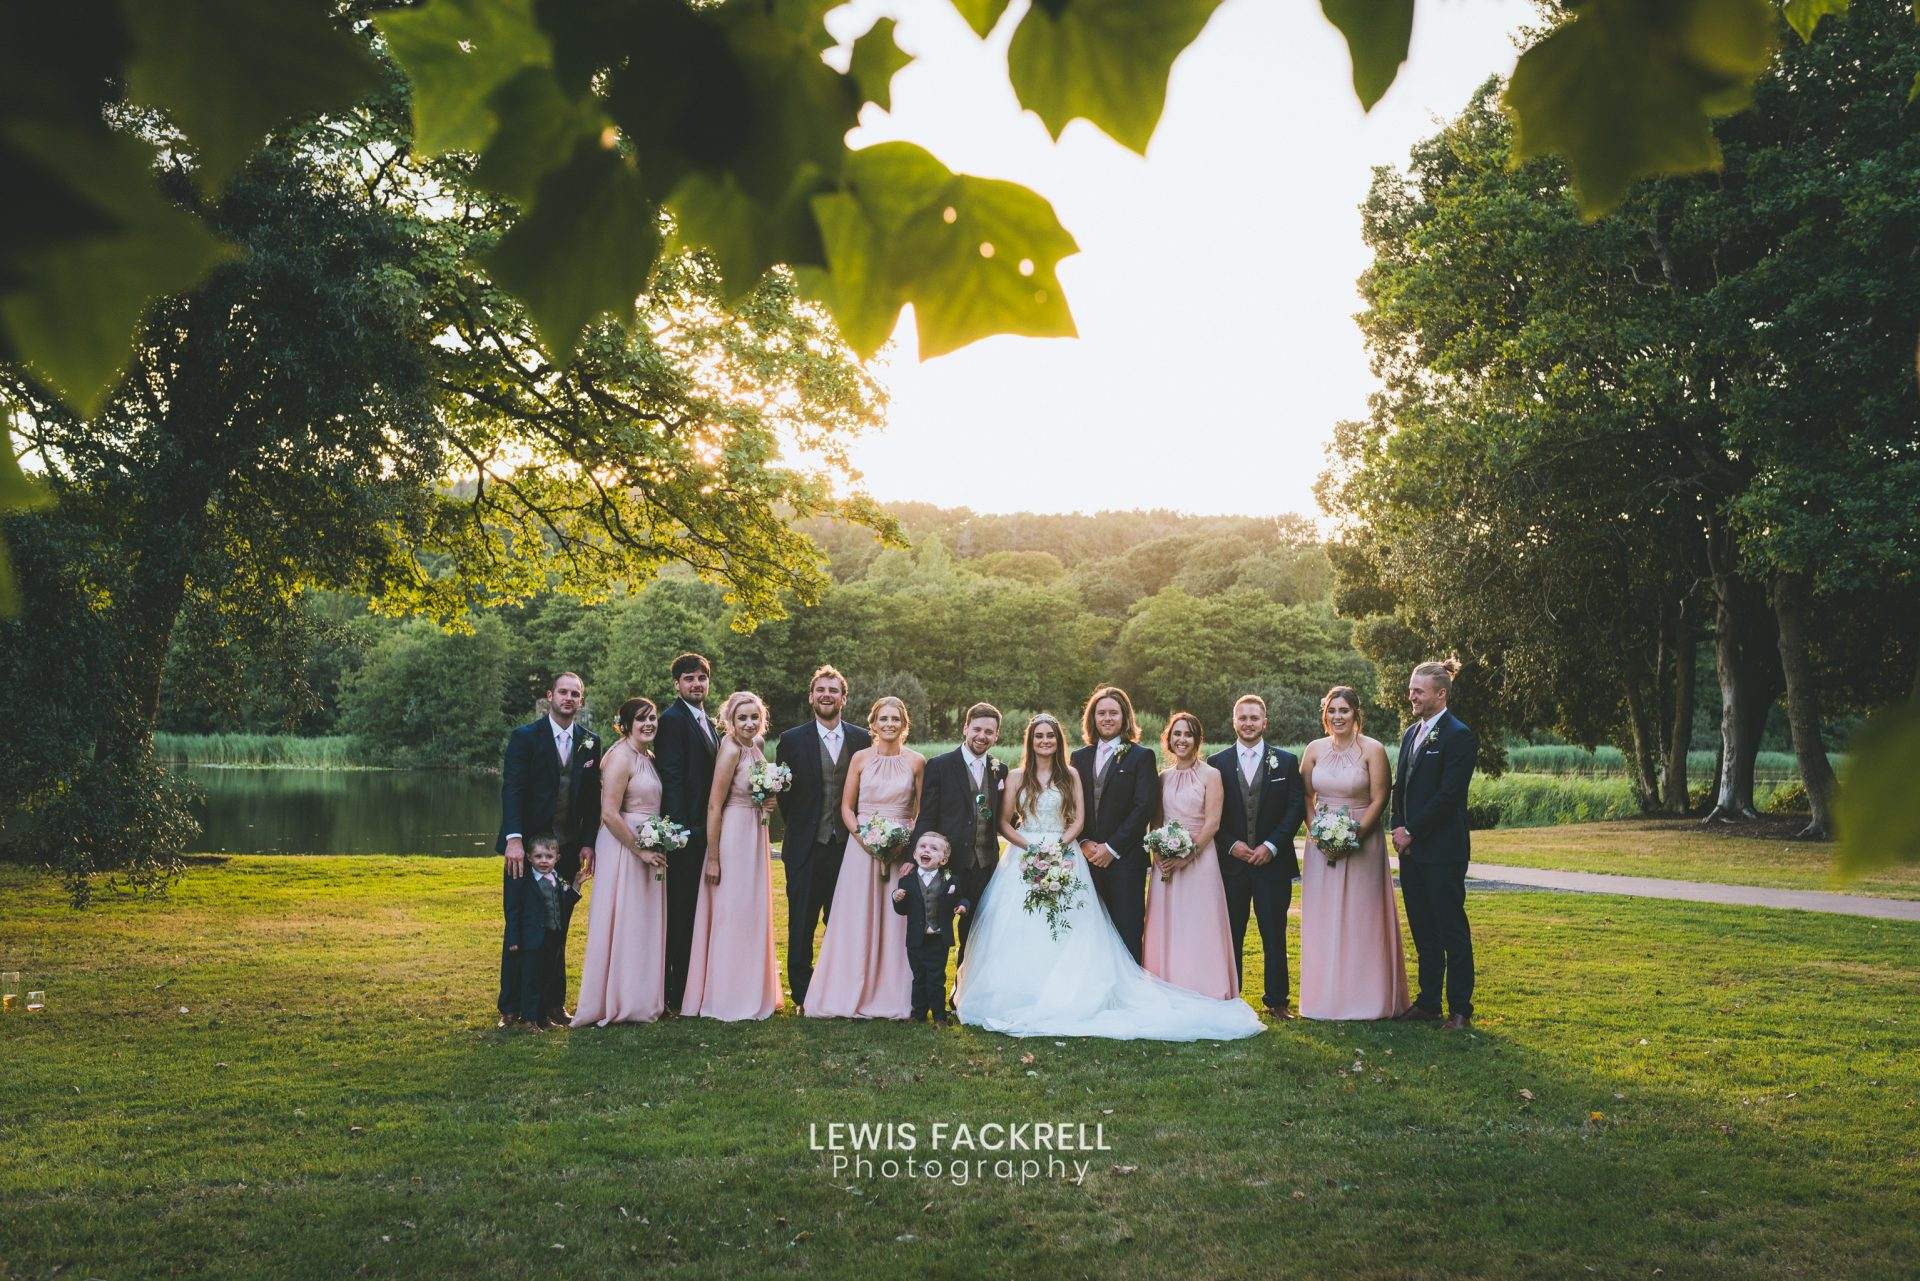 Formal group photos at your wedding at hensol castle photography